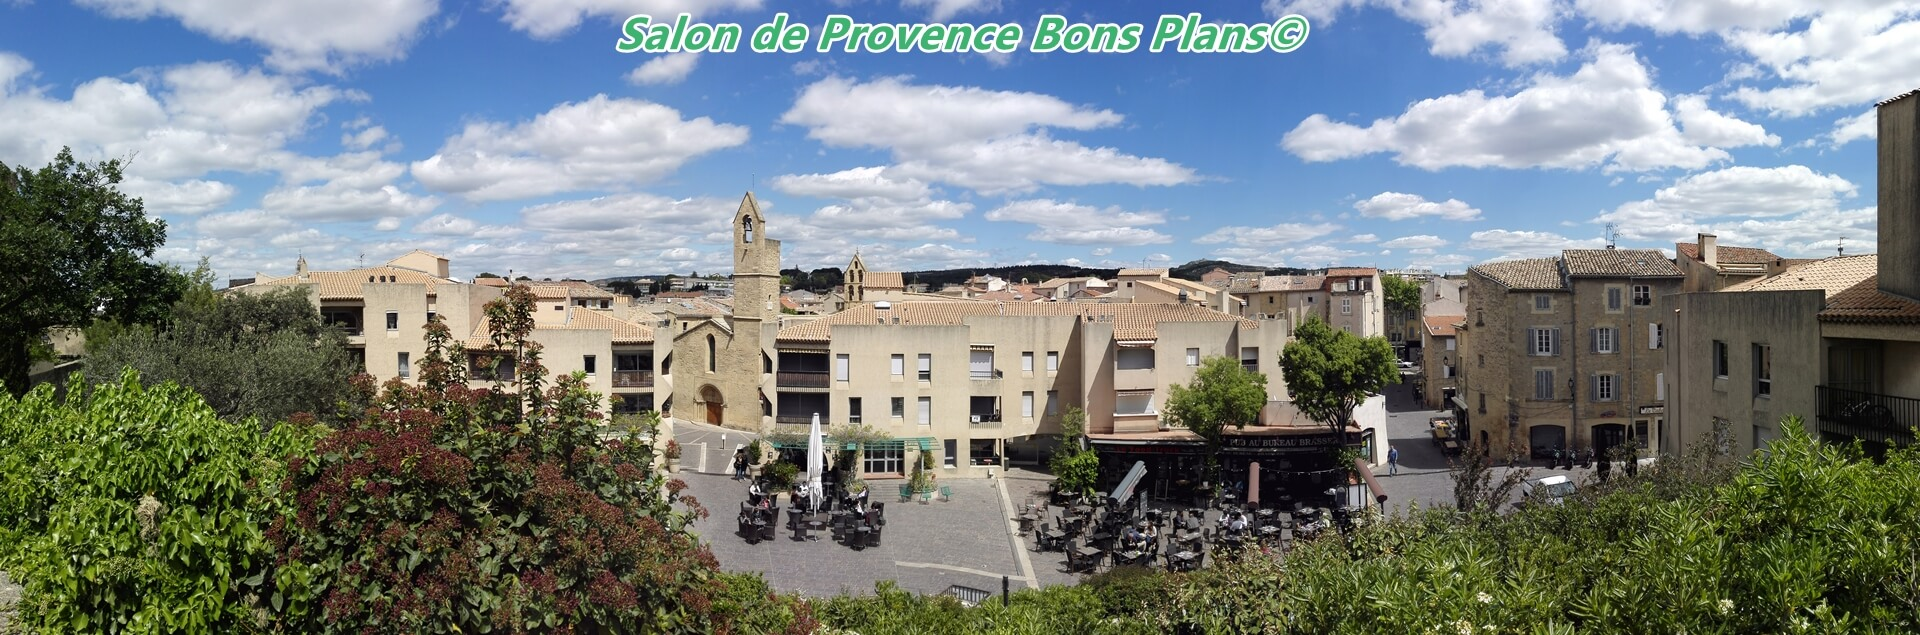 Agenda des sorties et v nements salon de provence for Hyundai salon de provence